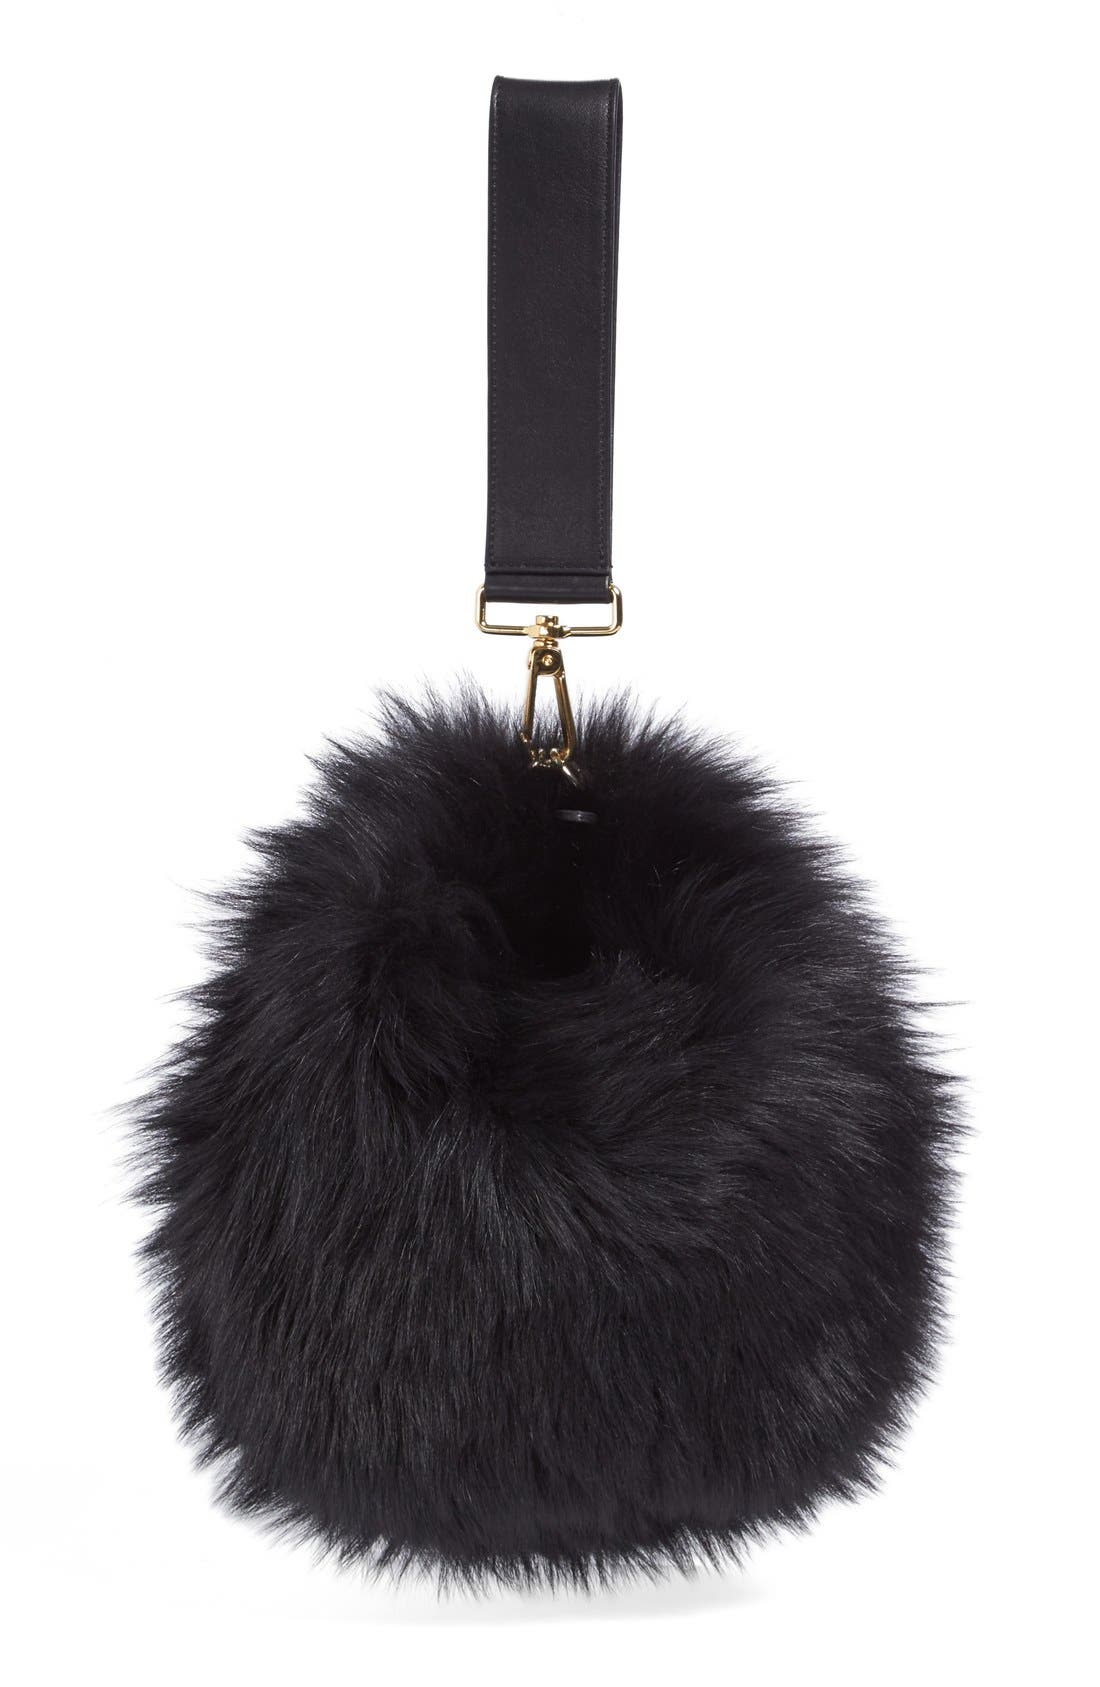 Alternate Image 3  - Simone Rocha Genuine Shearling Puff Clutch